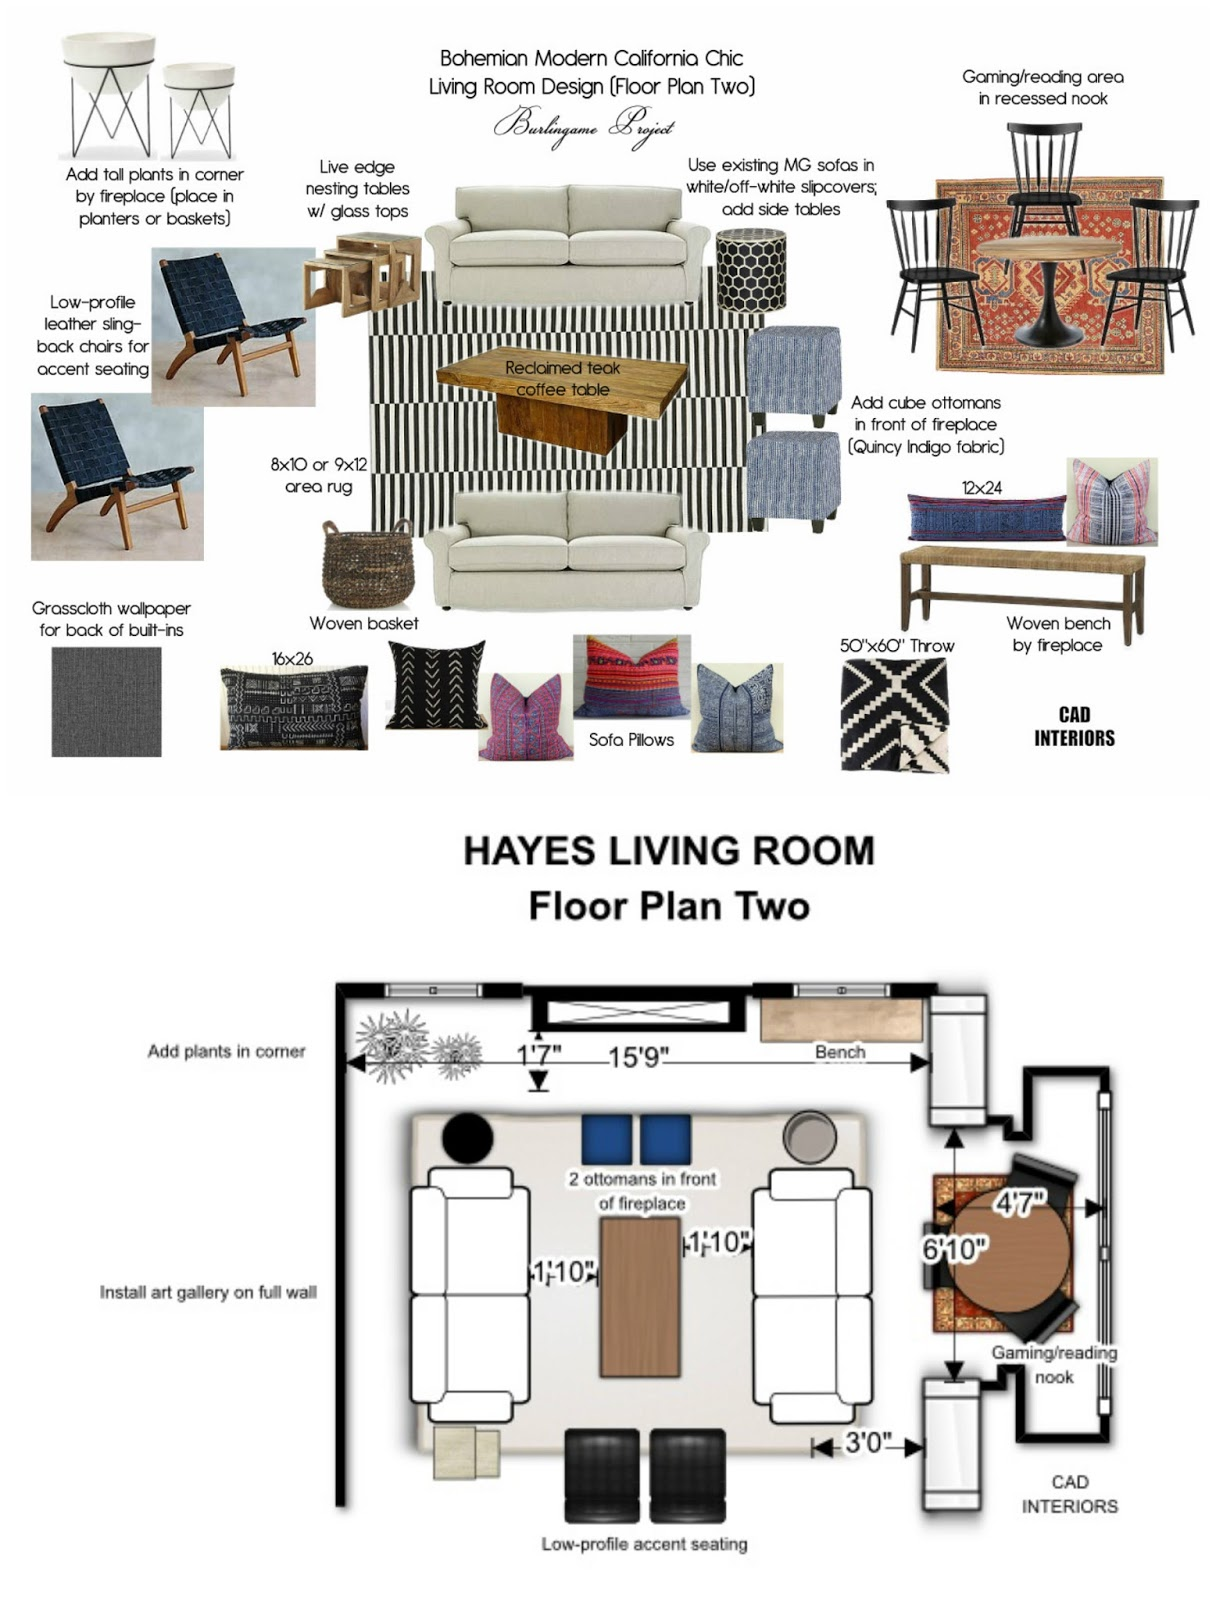 iinterior design decorating california boho chic transitional room design floor plan